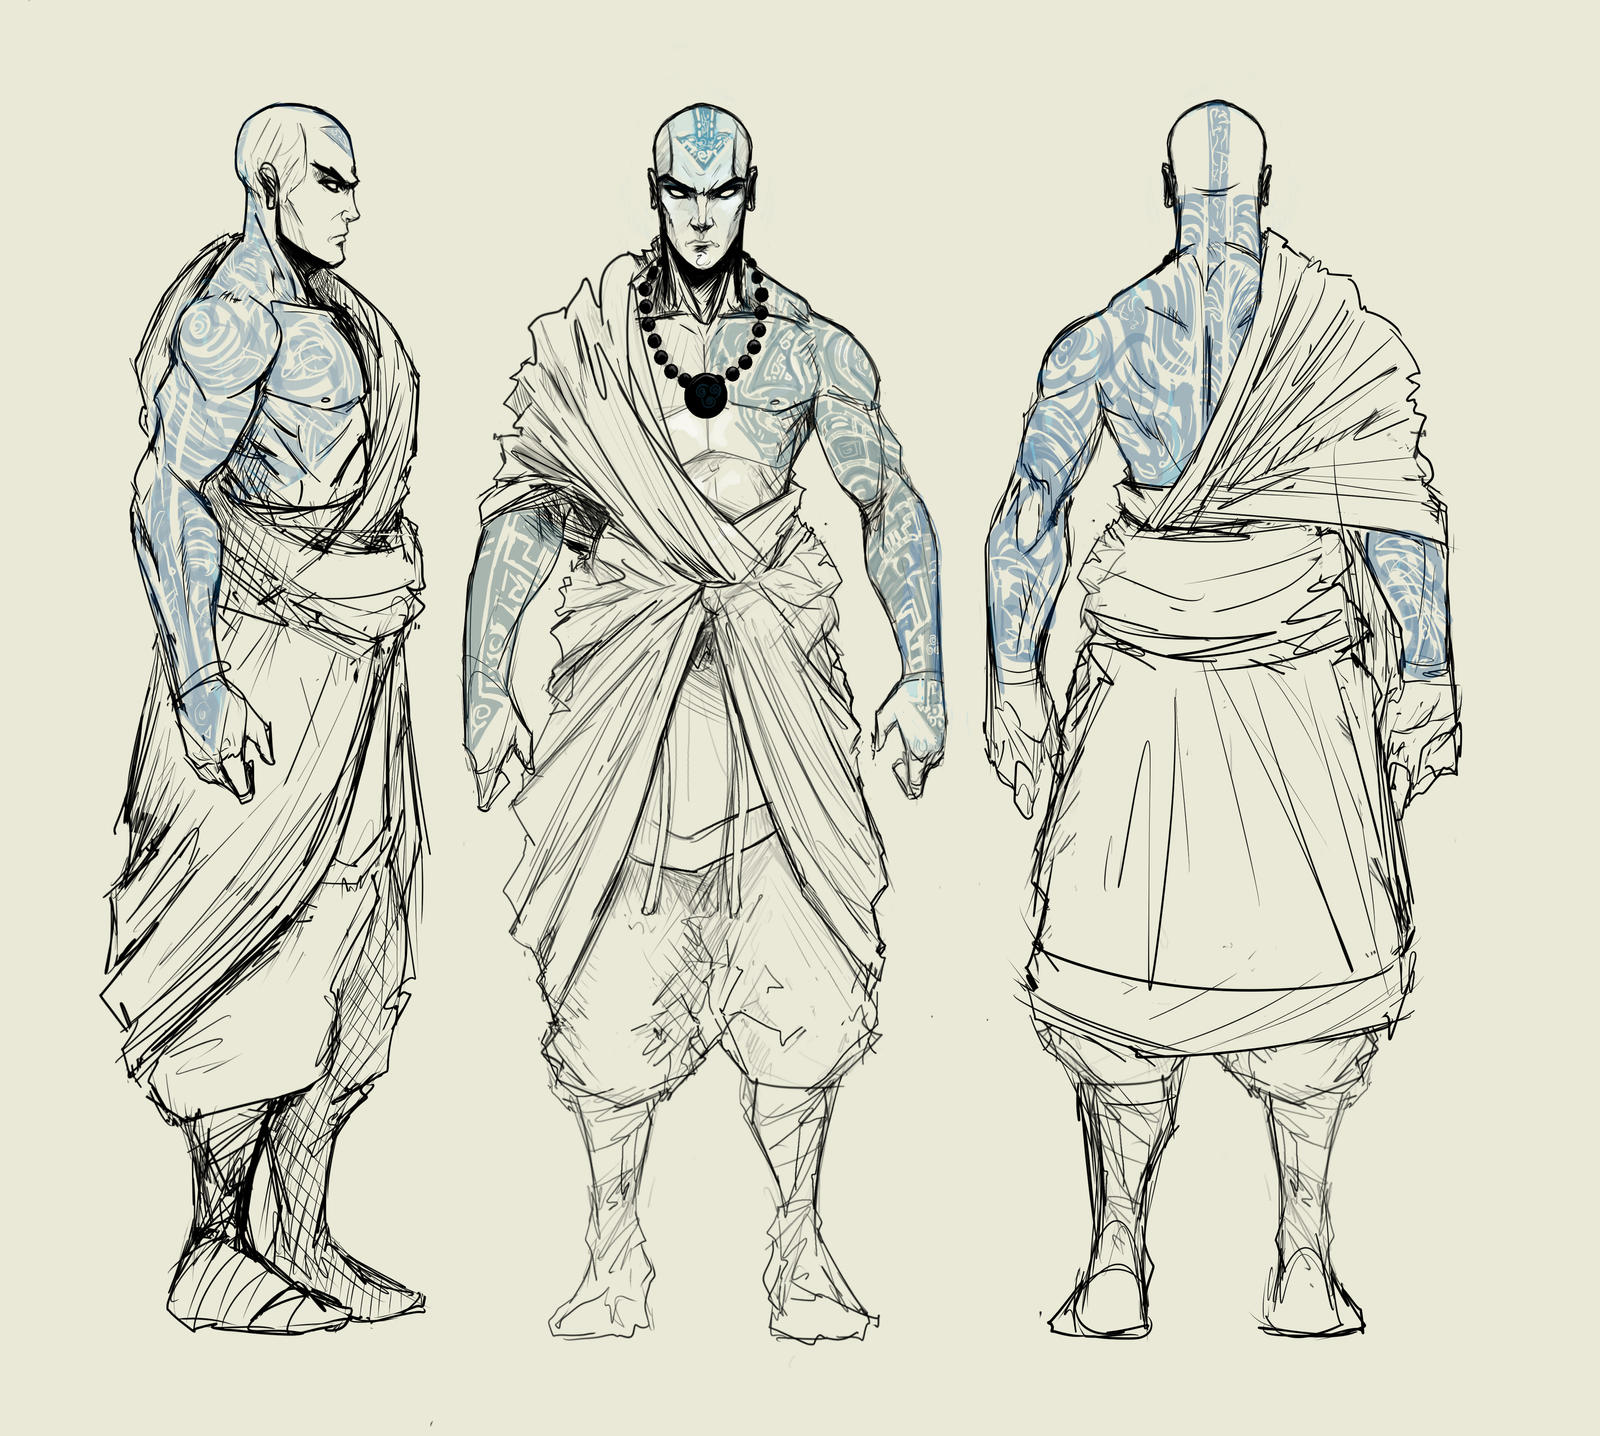 adult avatar aang turnaround by Sketchydeez on DeviantArt: sketchydeez.deviantart.com/art/adult-avatar-aang-turnaround-485287072